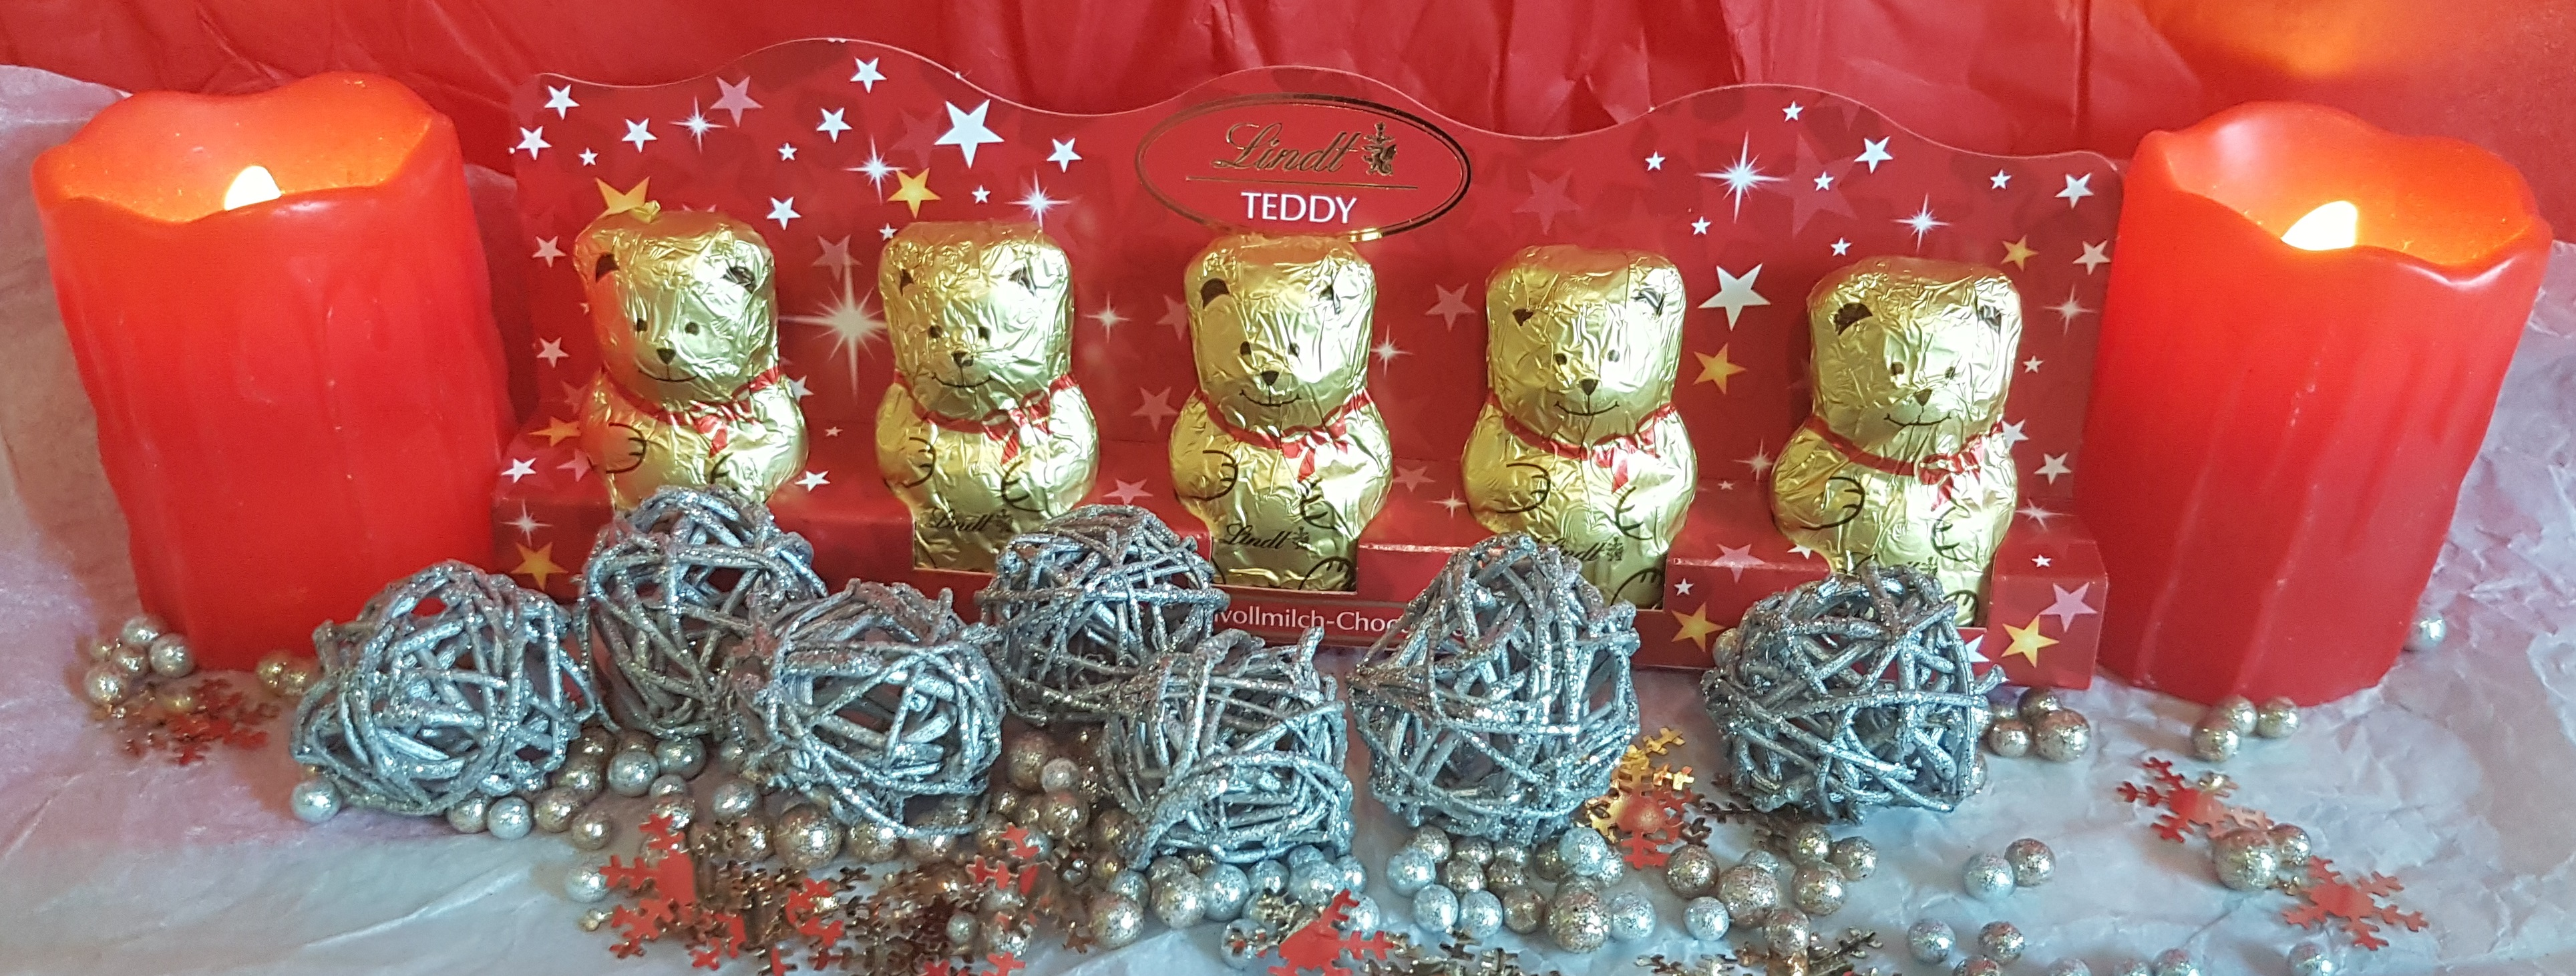 lindt-mini-teddy-set